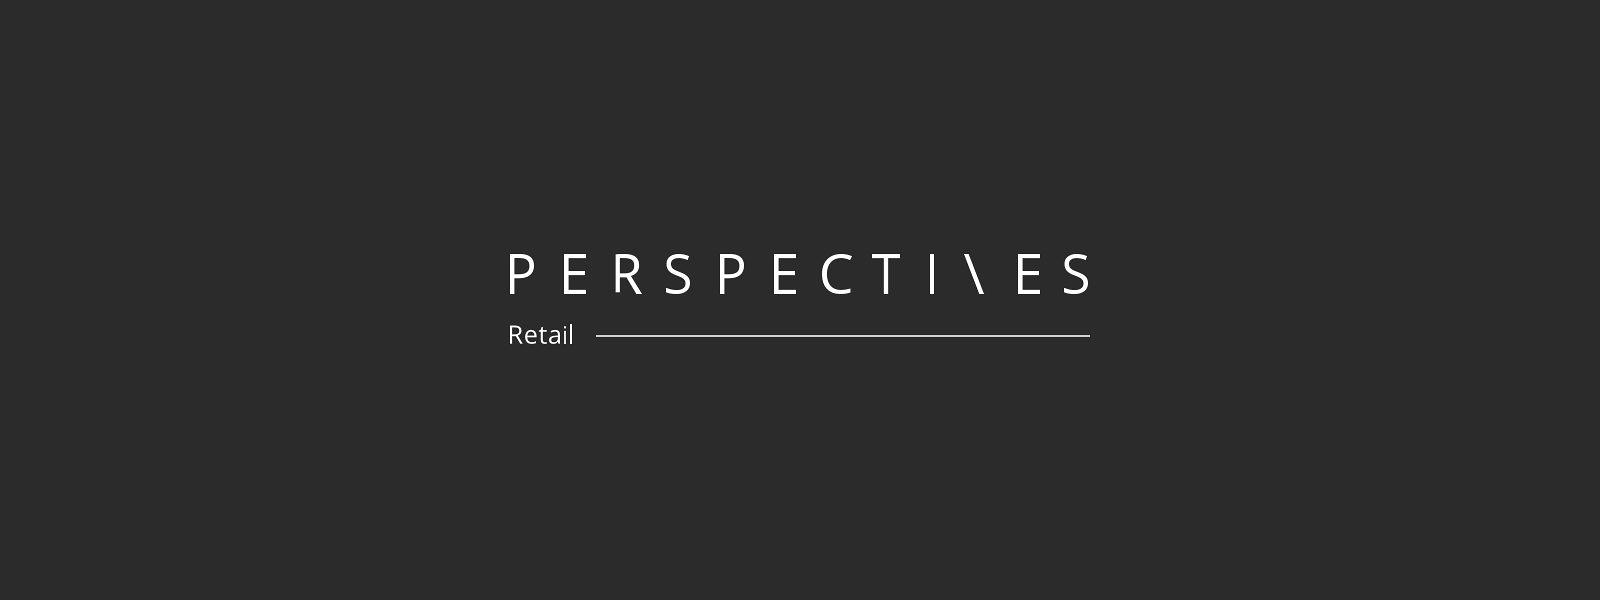 Retail Perspectives by ThoughtWorks